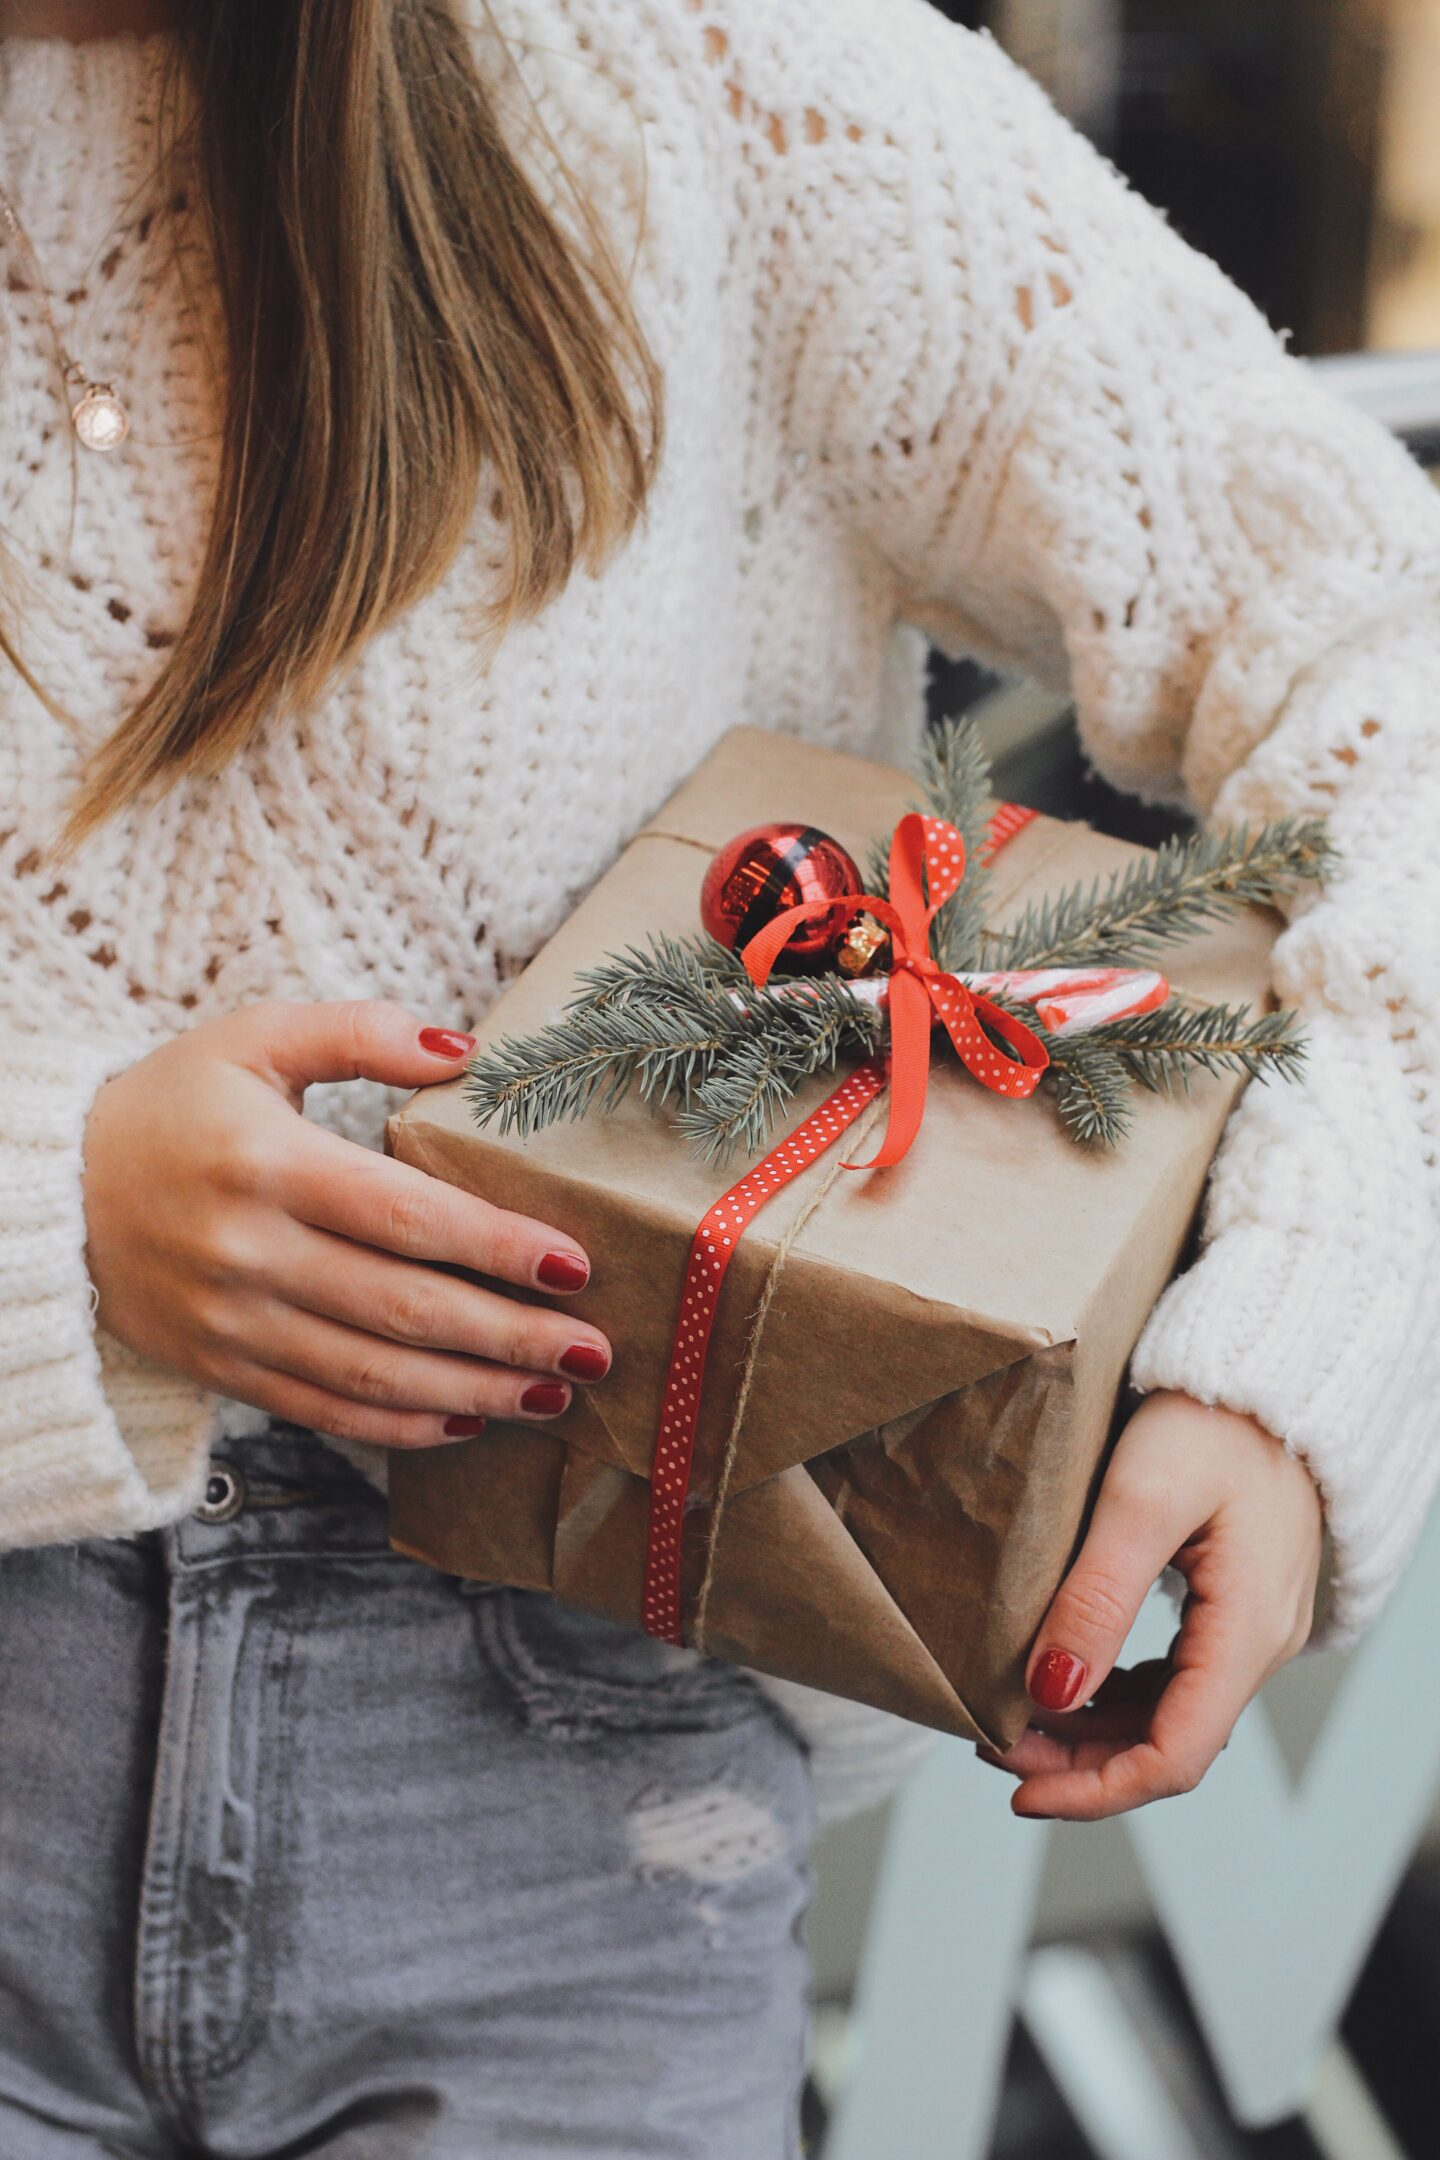 Gifts For A 20 Year Old College Girl She'll Love